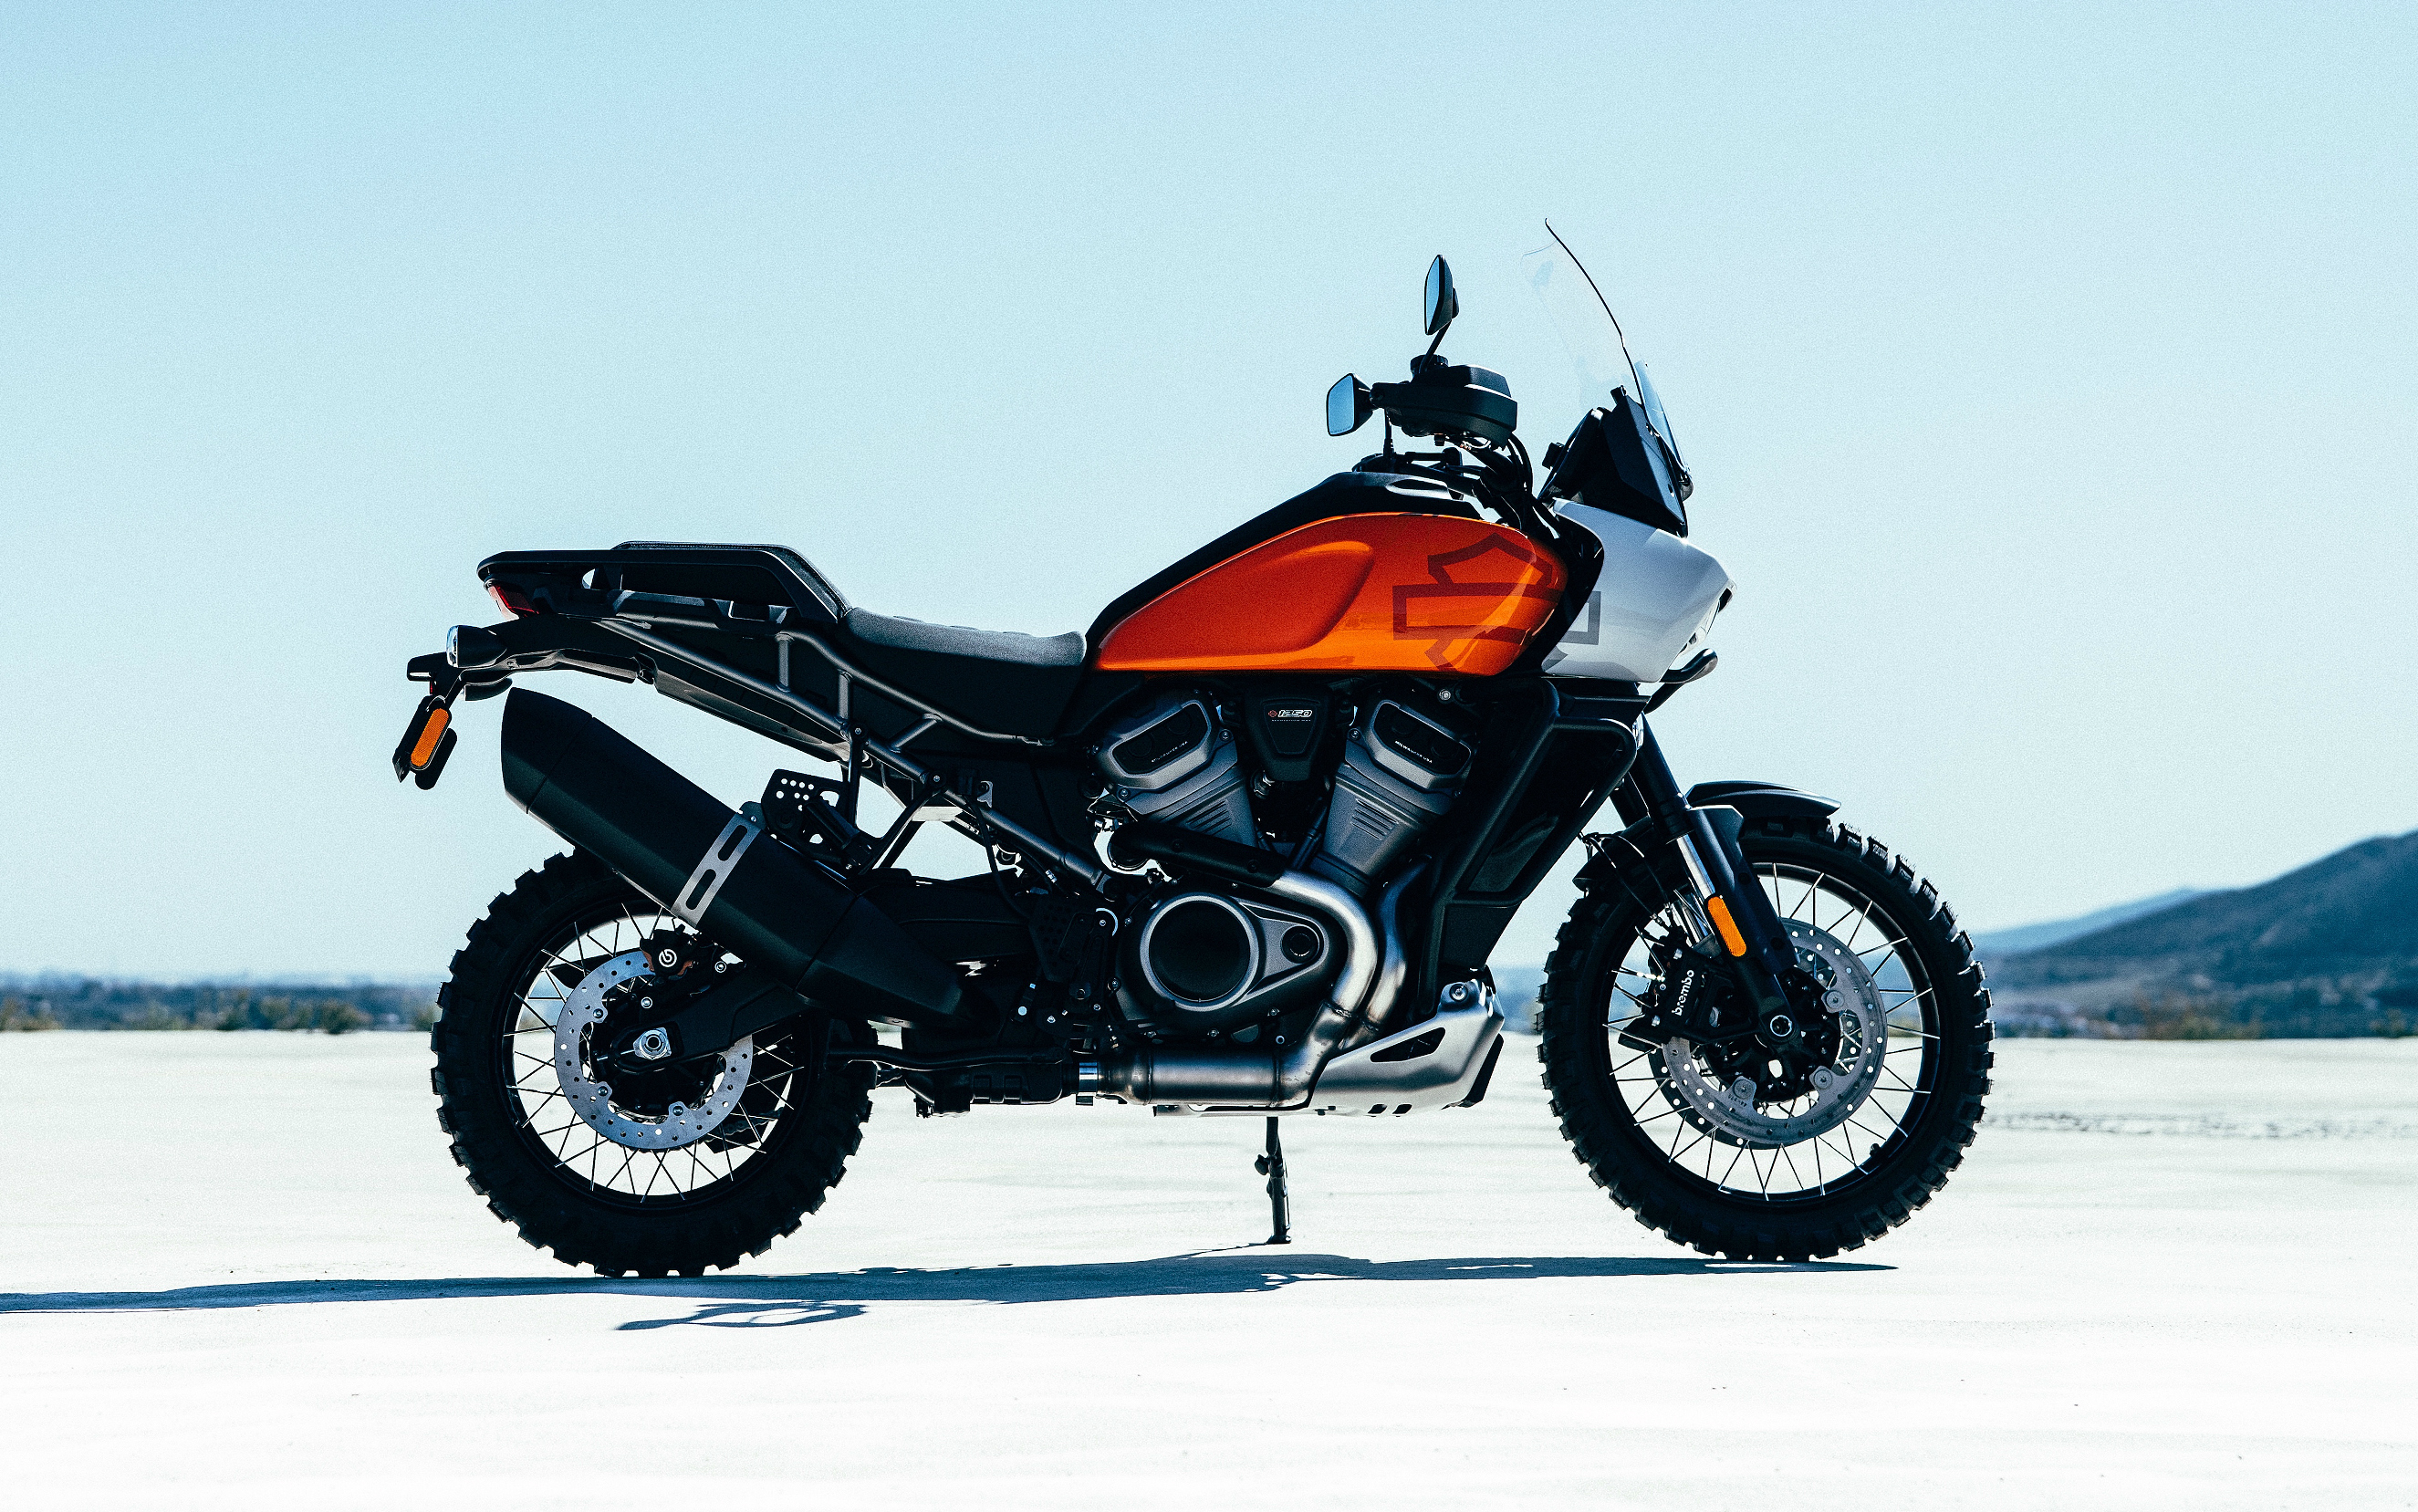 2020 Harley Davidson Pan America Adventure Touring Motorcycle